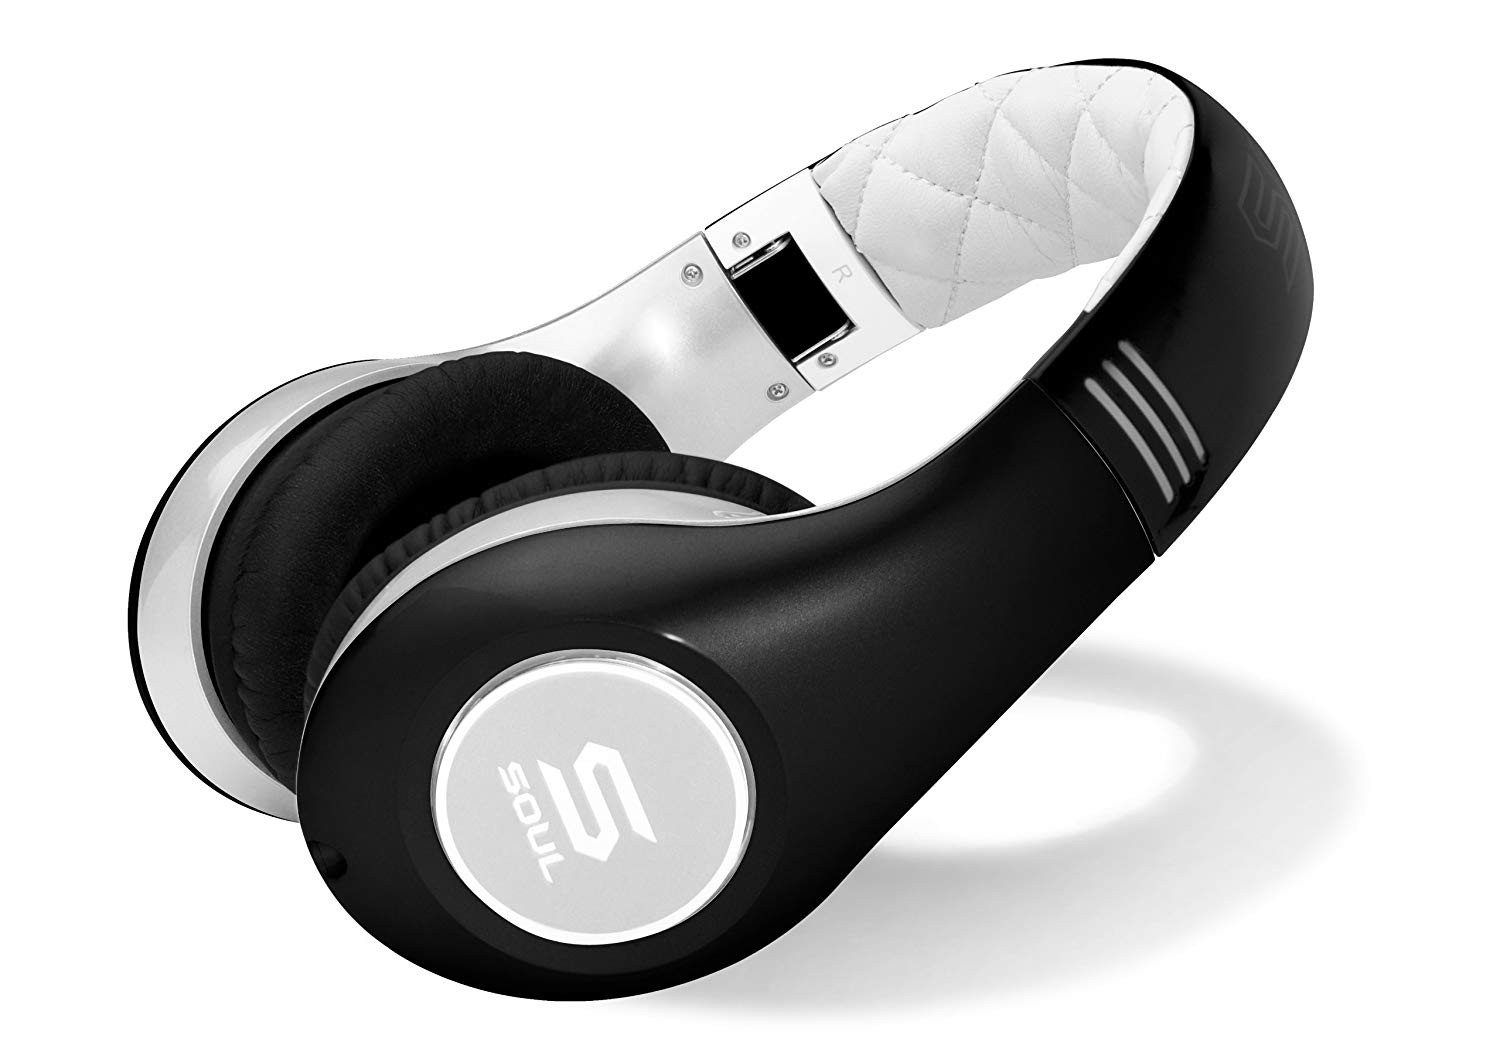 SOUL by Ludacris SL150BW High-Definition On-Ear Wired Headphones Black/White Color